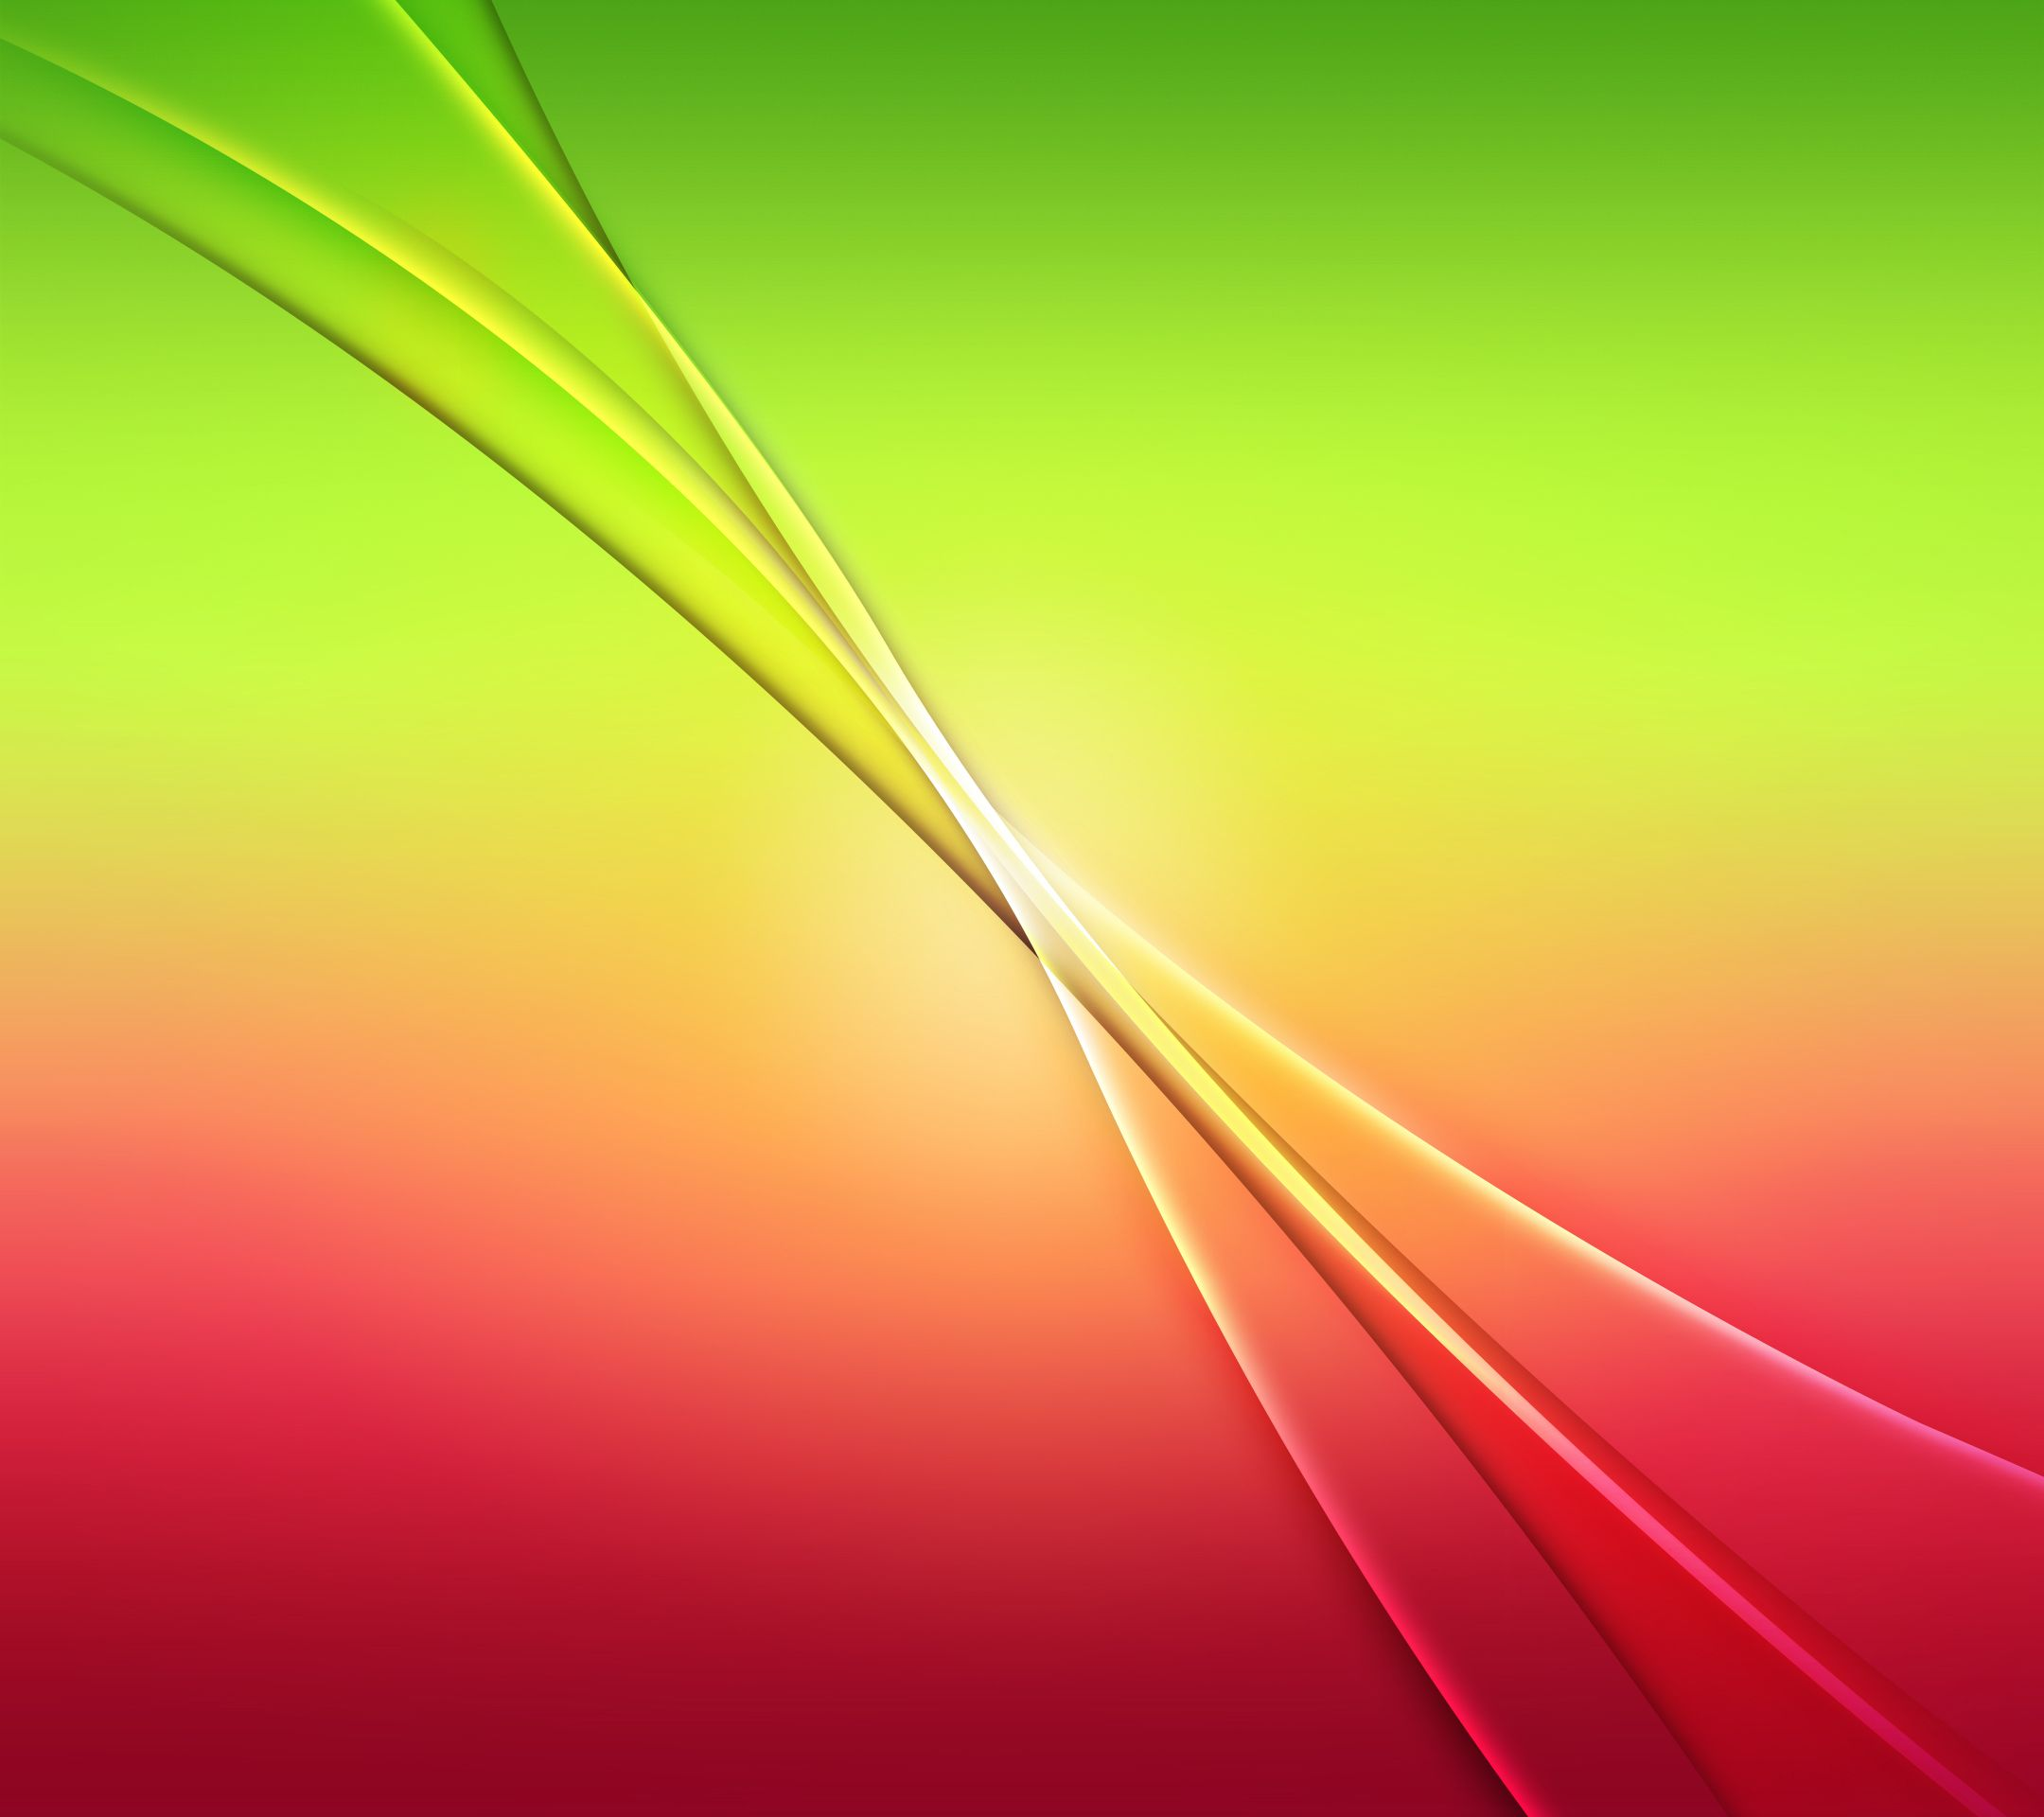 wallpapers lg g2 in 2020 stock wallpaper background images hd cool backgrounds pinterest